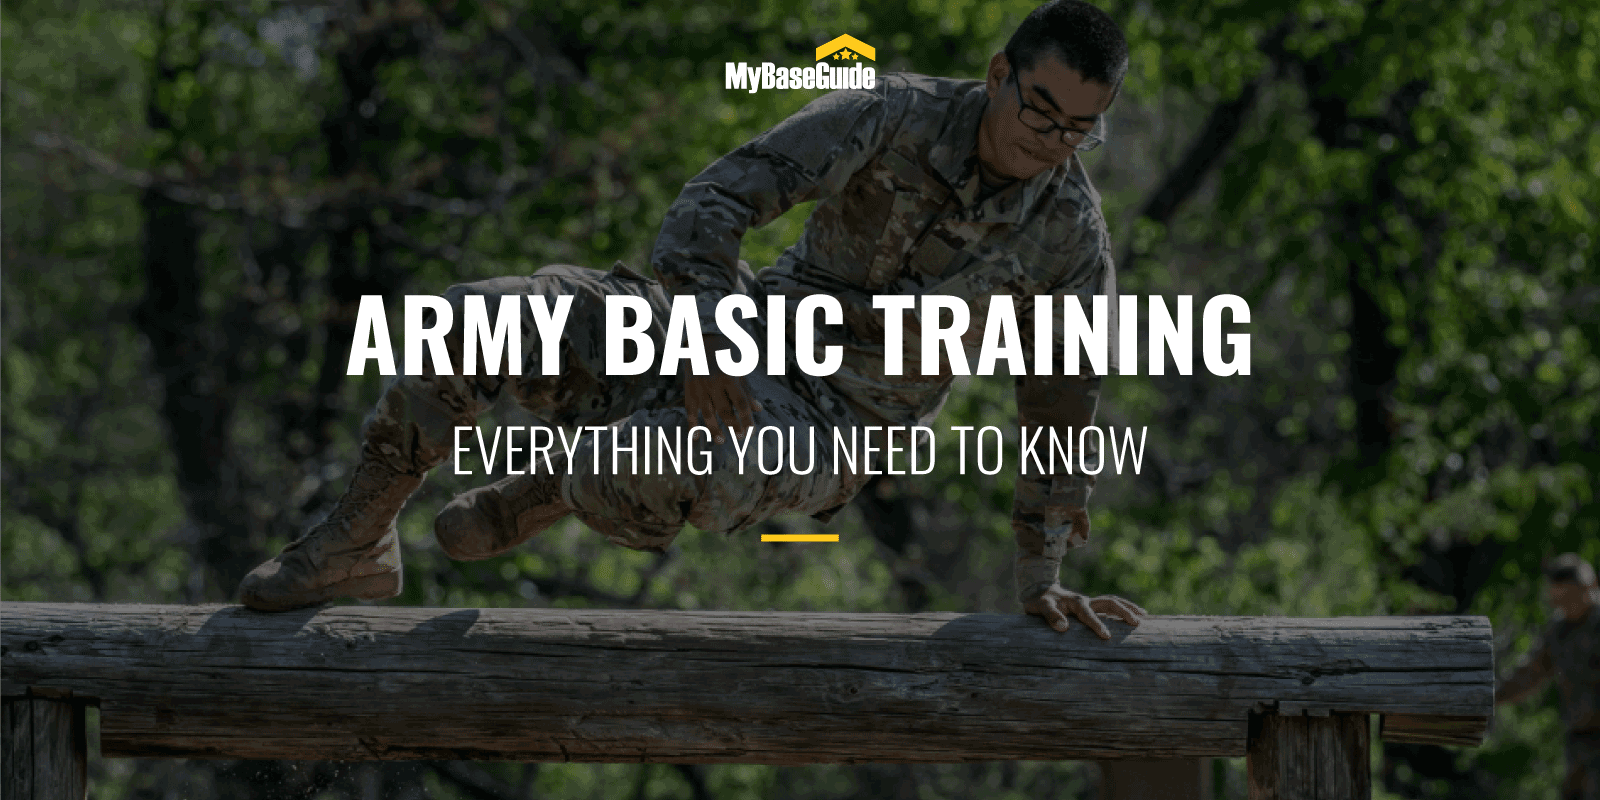 Army Basic Training: Everything You Need to Know